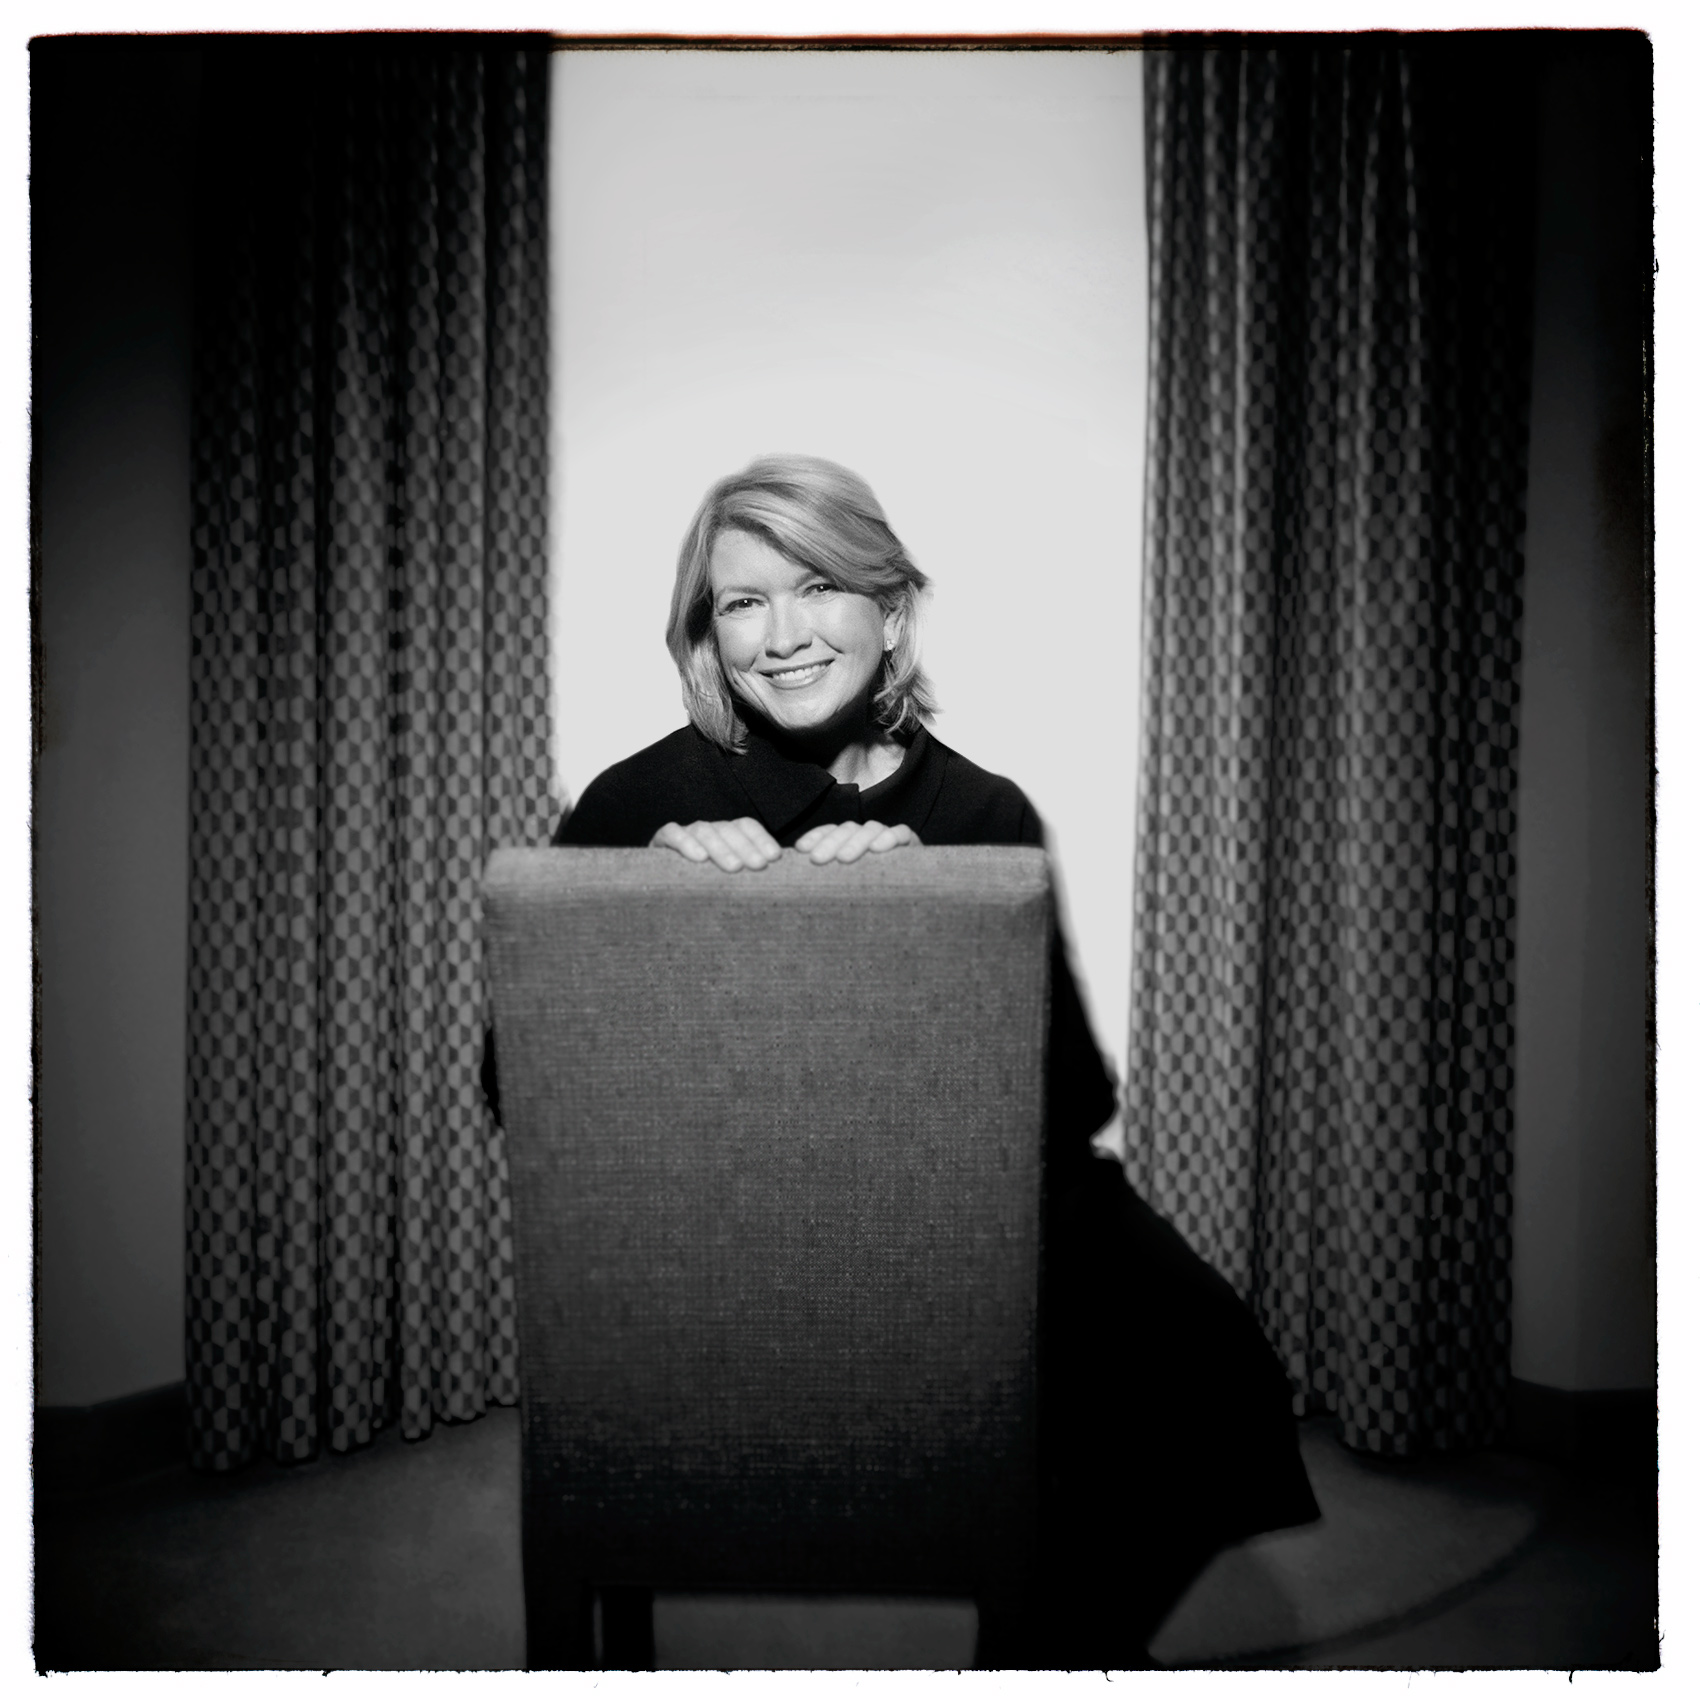 a-toronto-portrait-of-celebrity-chef-martha-stewart-at-her-hotel-in-toronto-canada